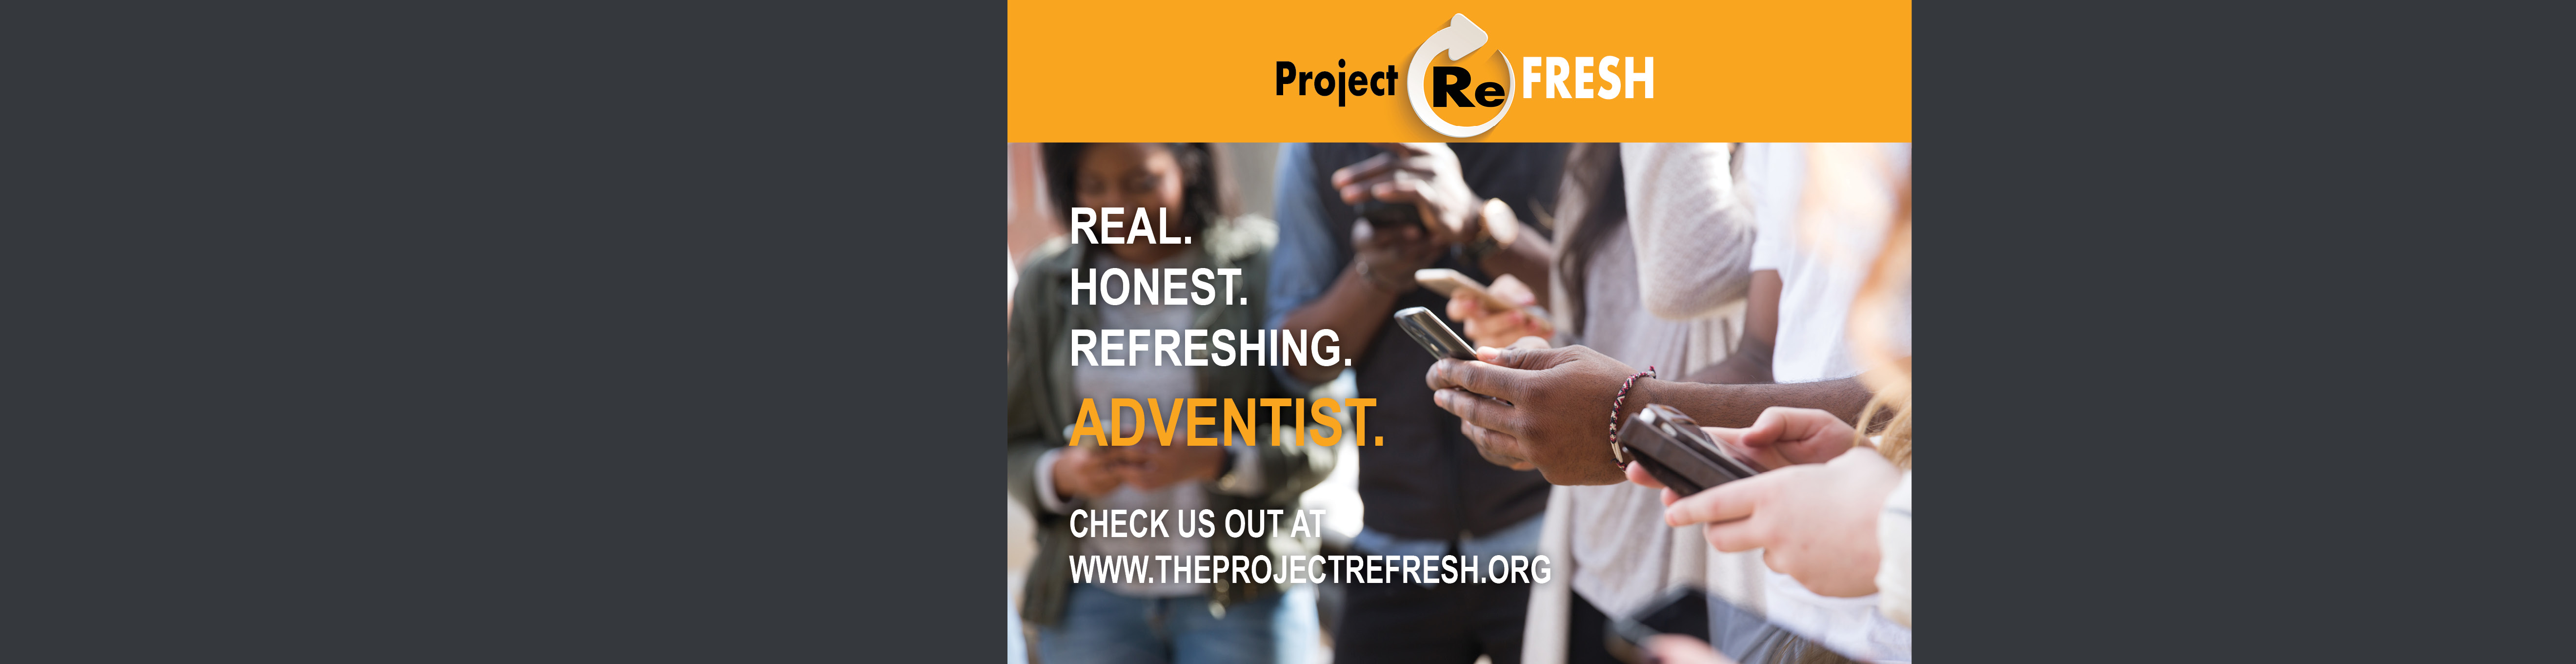 2018 Project Refresh_Web banner 2